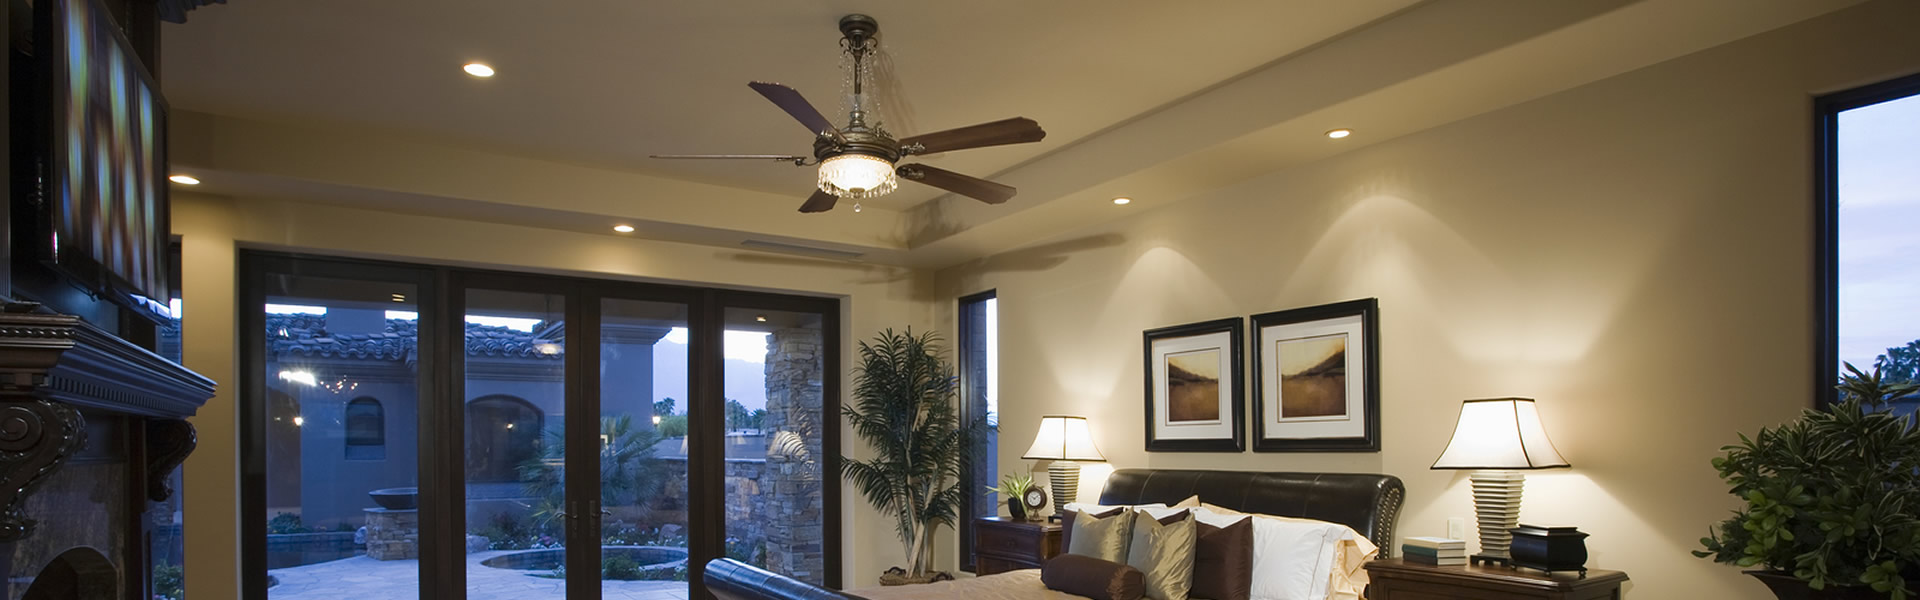 Ceiling Fan Installation Dallas Tx Exhaust Fan